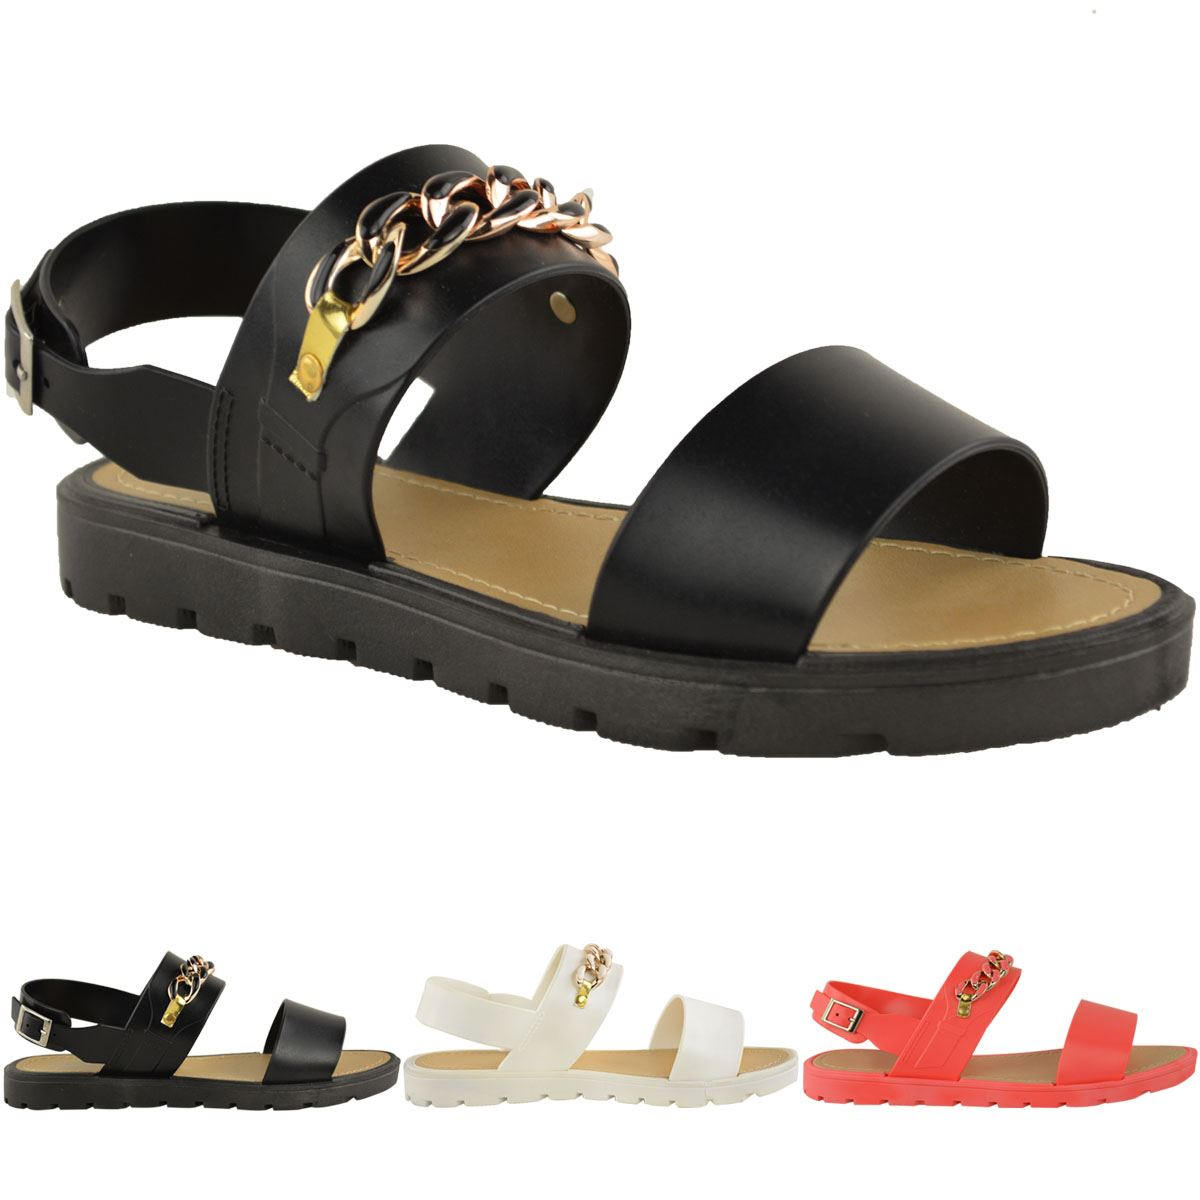 WOMENS LADIES SUMMER JELLY SANDALS ANKLE STRAP SLING BACK ...